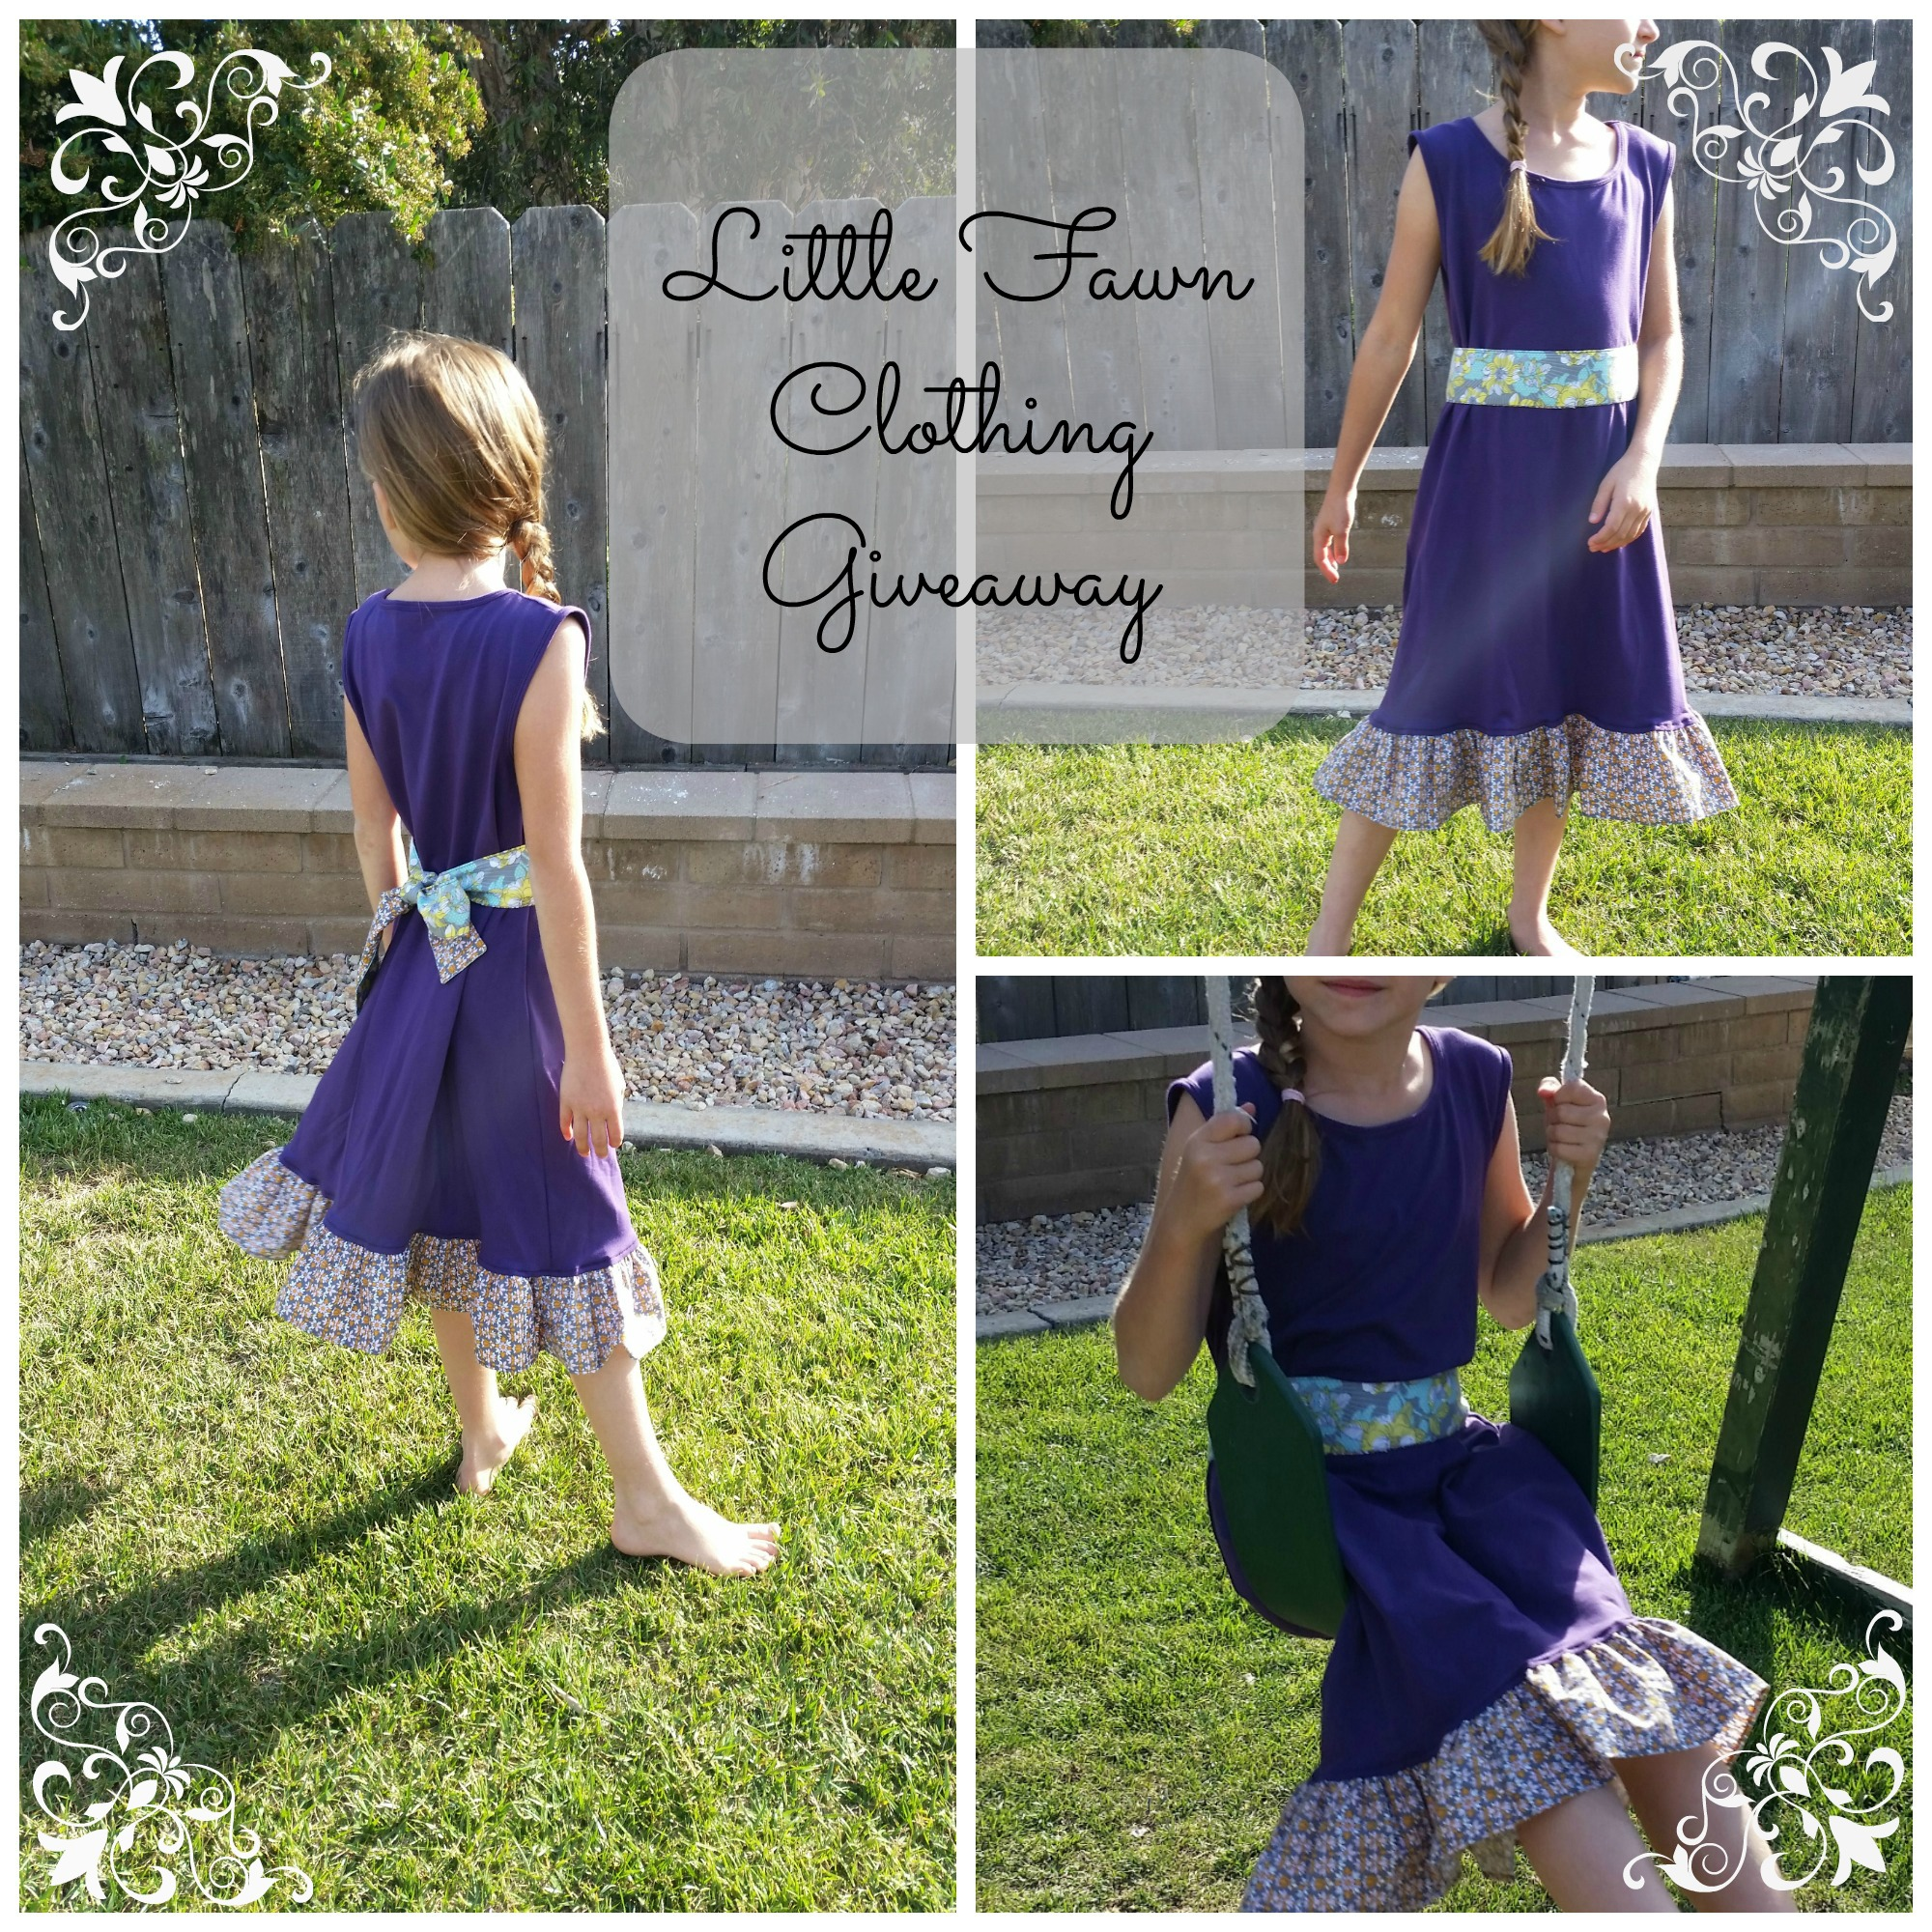 Little Fawn Clothing Boutique – Giveaway!